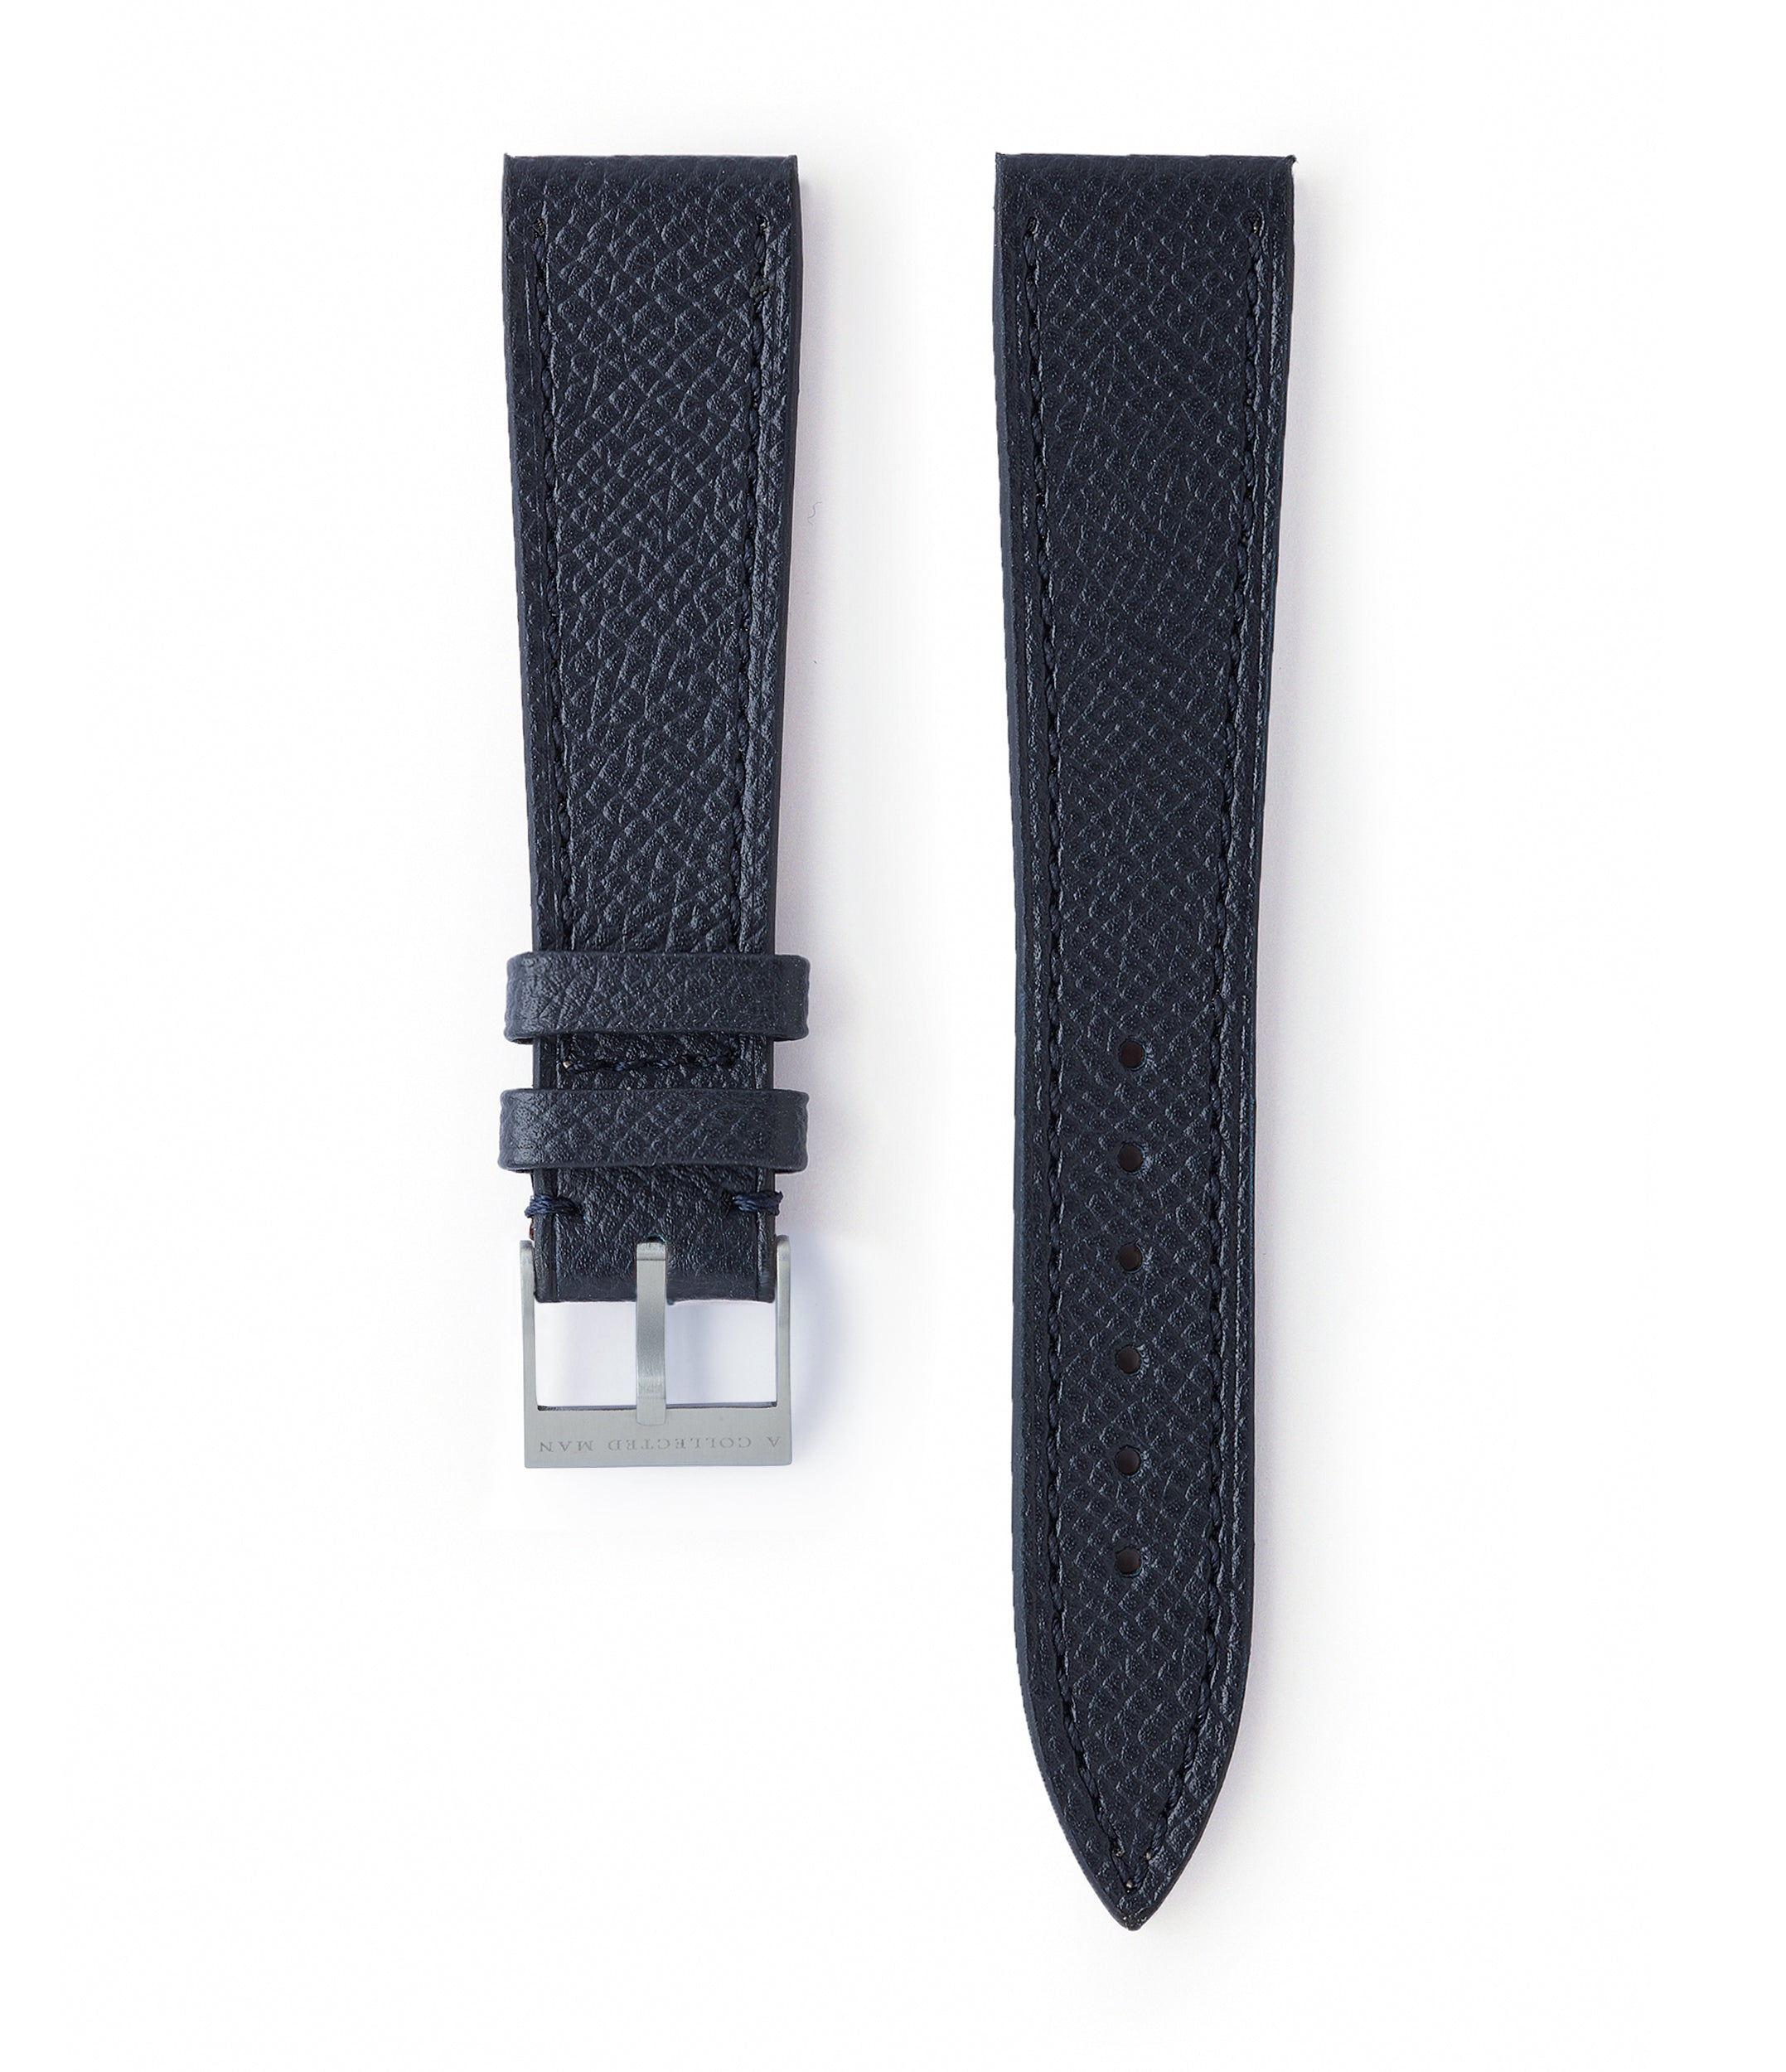 buy navy blue grained leather watch strap La Rochelle Molequin for sale order online at A Collected Man London